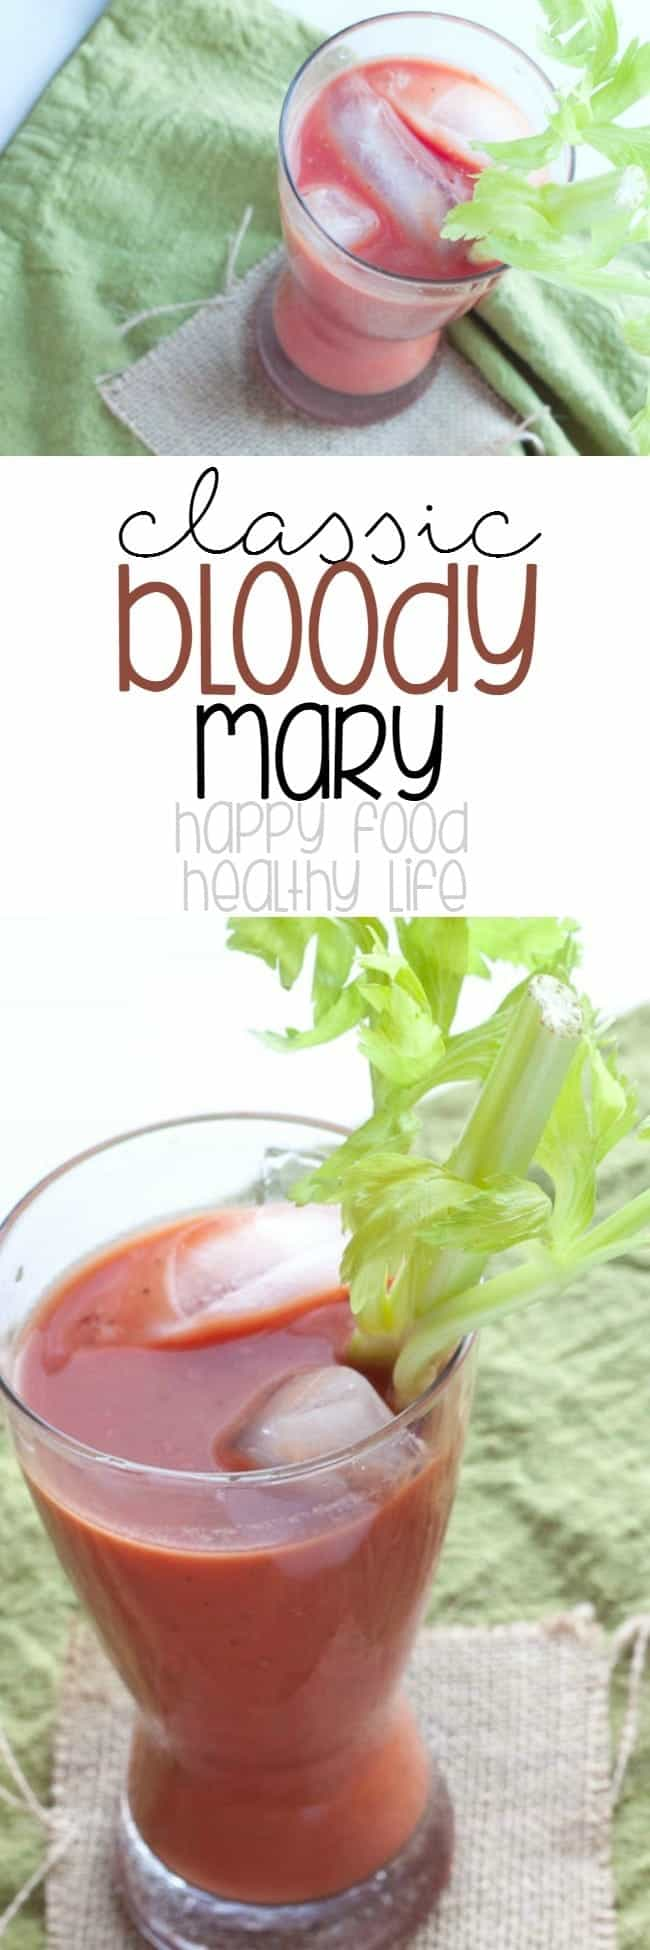 Classic Bloody Mary - need a hangover cure? Or how about just a delicious cocktail? This bloody mary is both of those things!